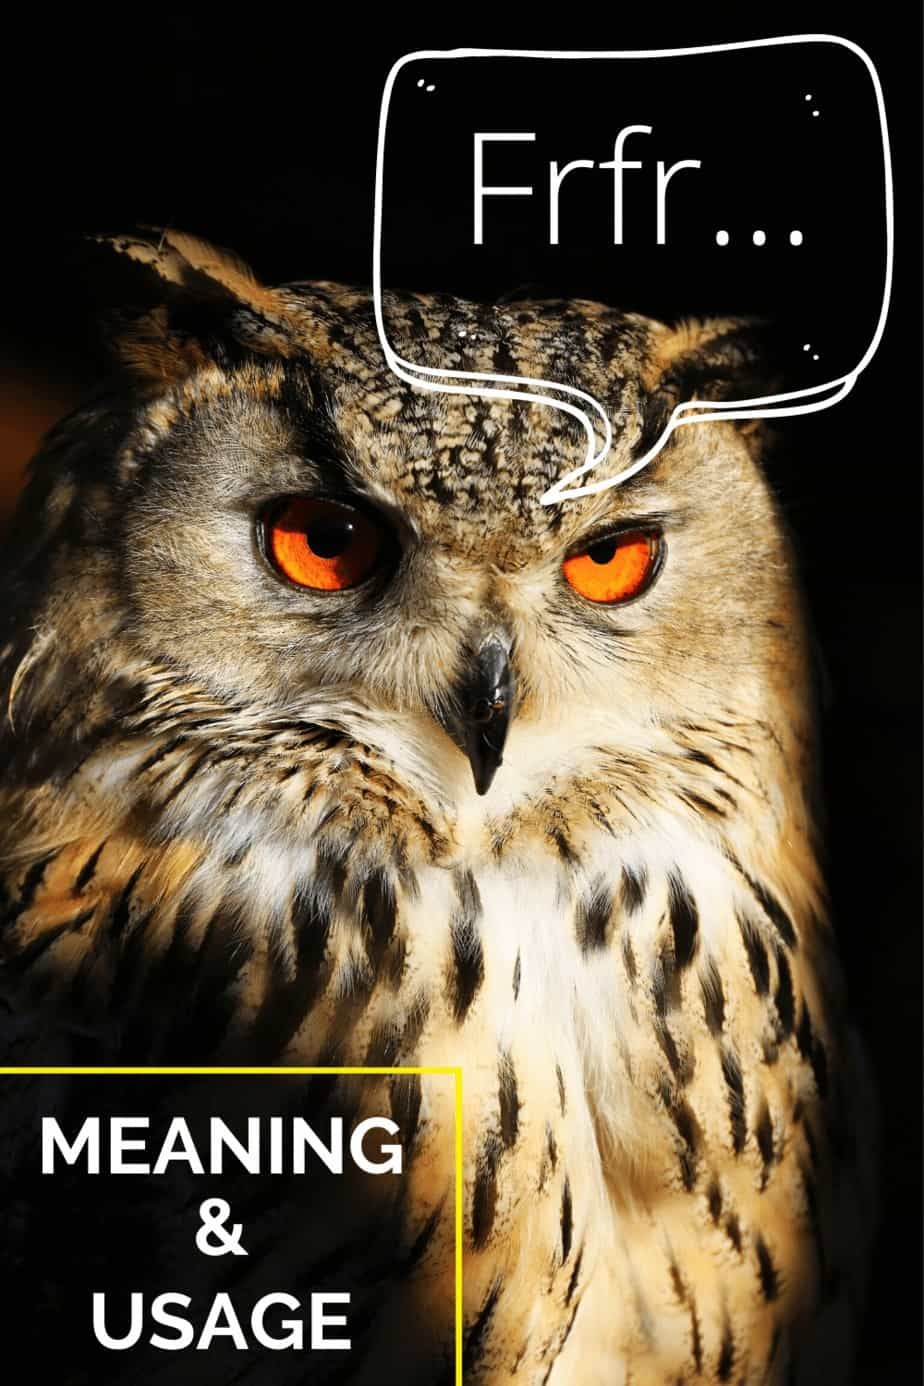 Frfr Meaning & Usage